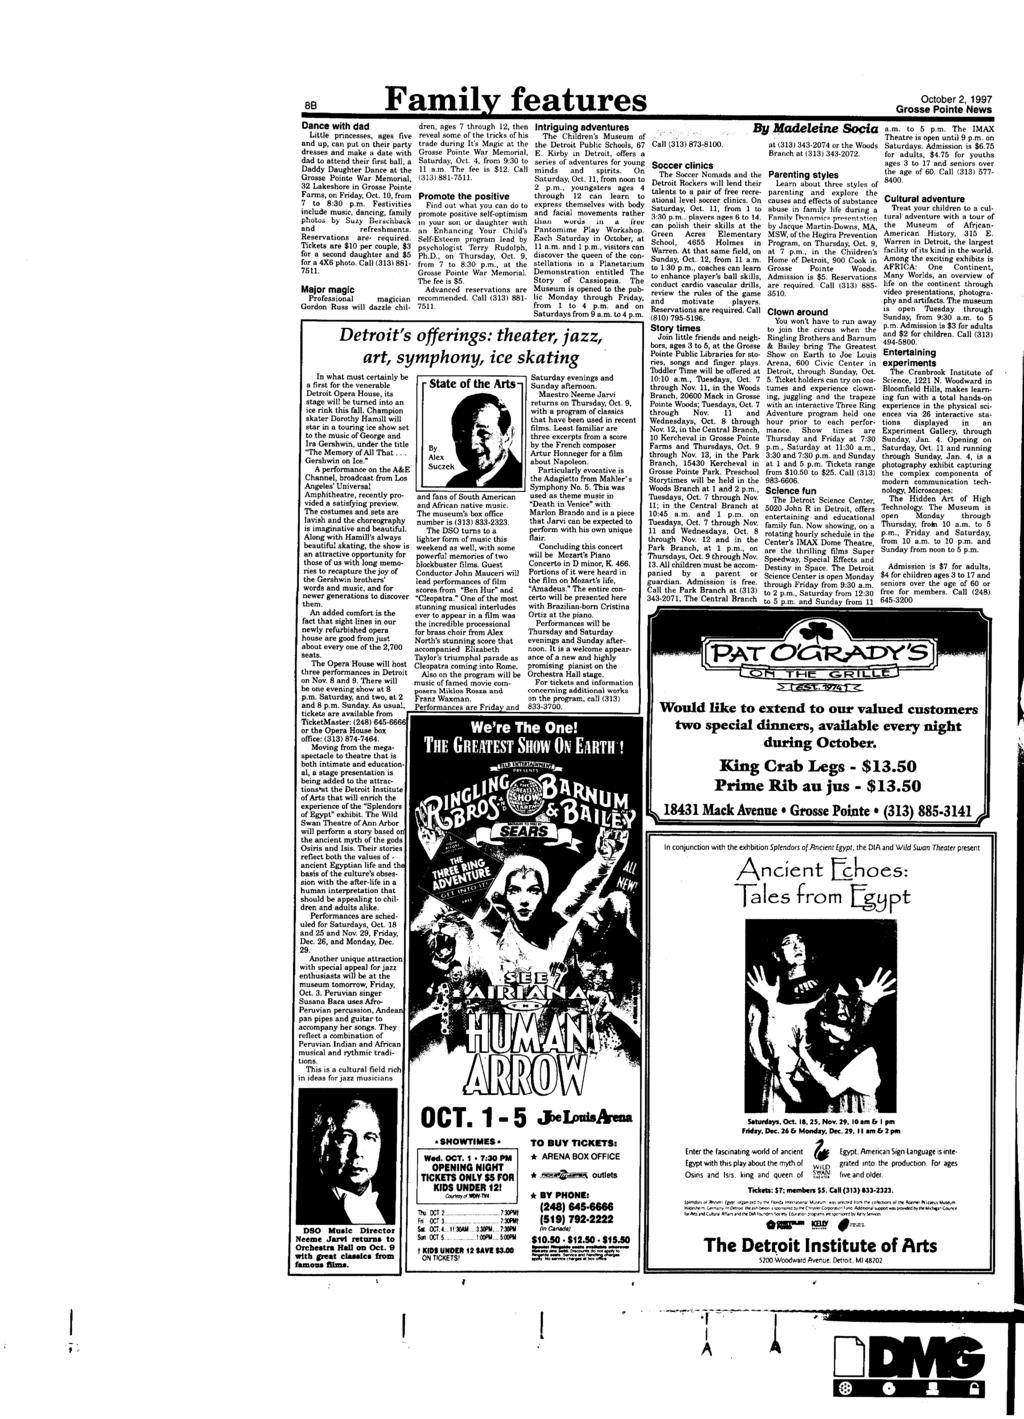 Iilc see skateboards pdf 88 famil features october 2 1997 grosse pointe news dance with dad little pnncesses fandeluxe Image collections